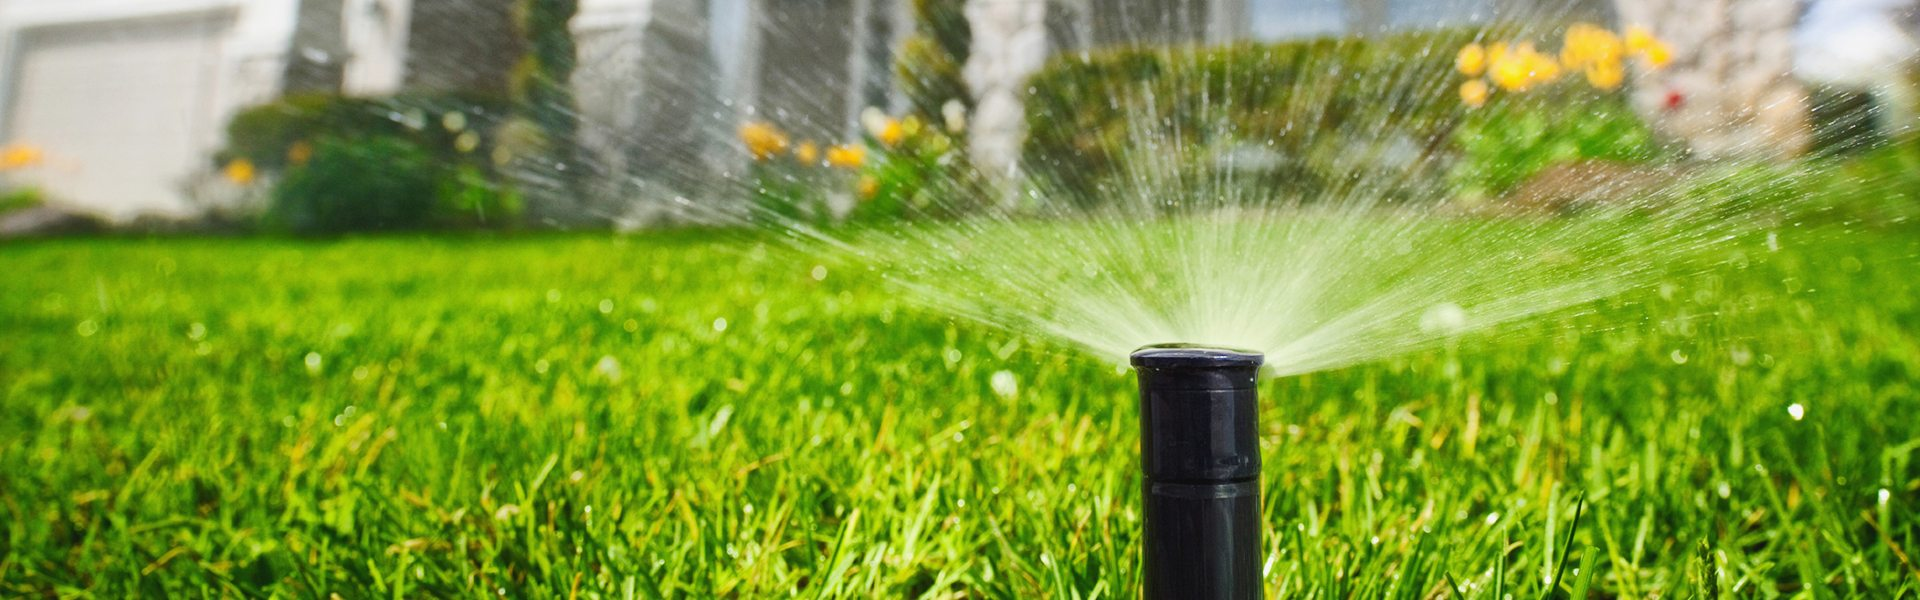 Big Easy Landscaping Irrigation service New Orleans - Big Easy Landscaping